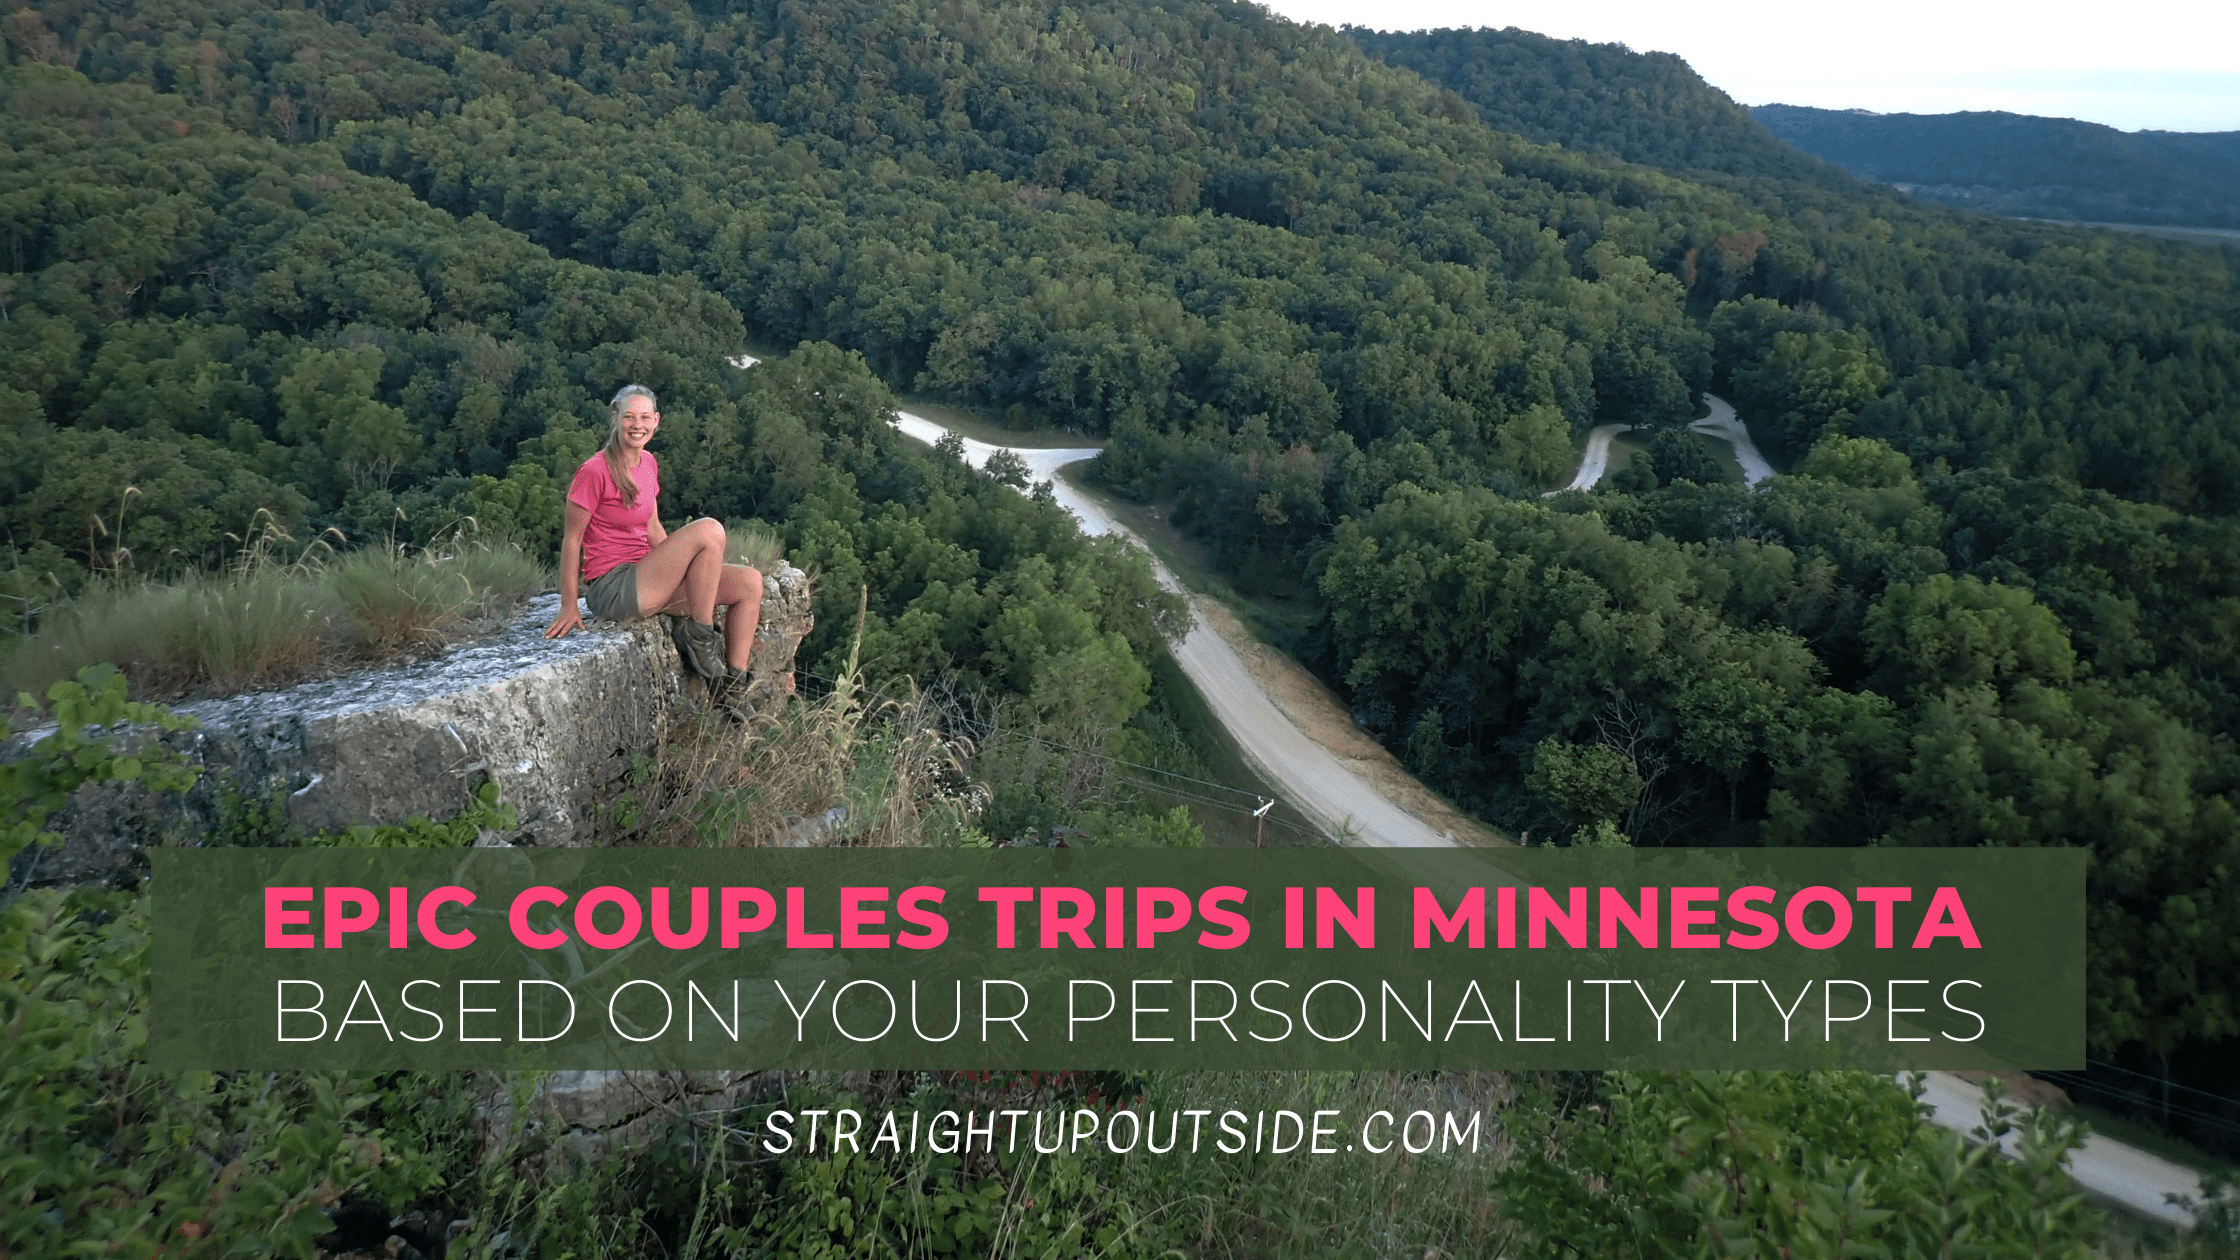 Epic Couples Trips in Minnesota